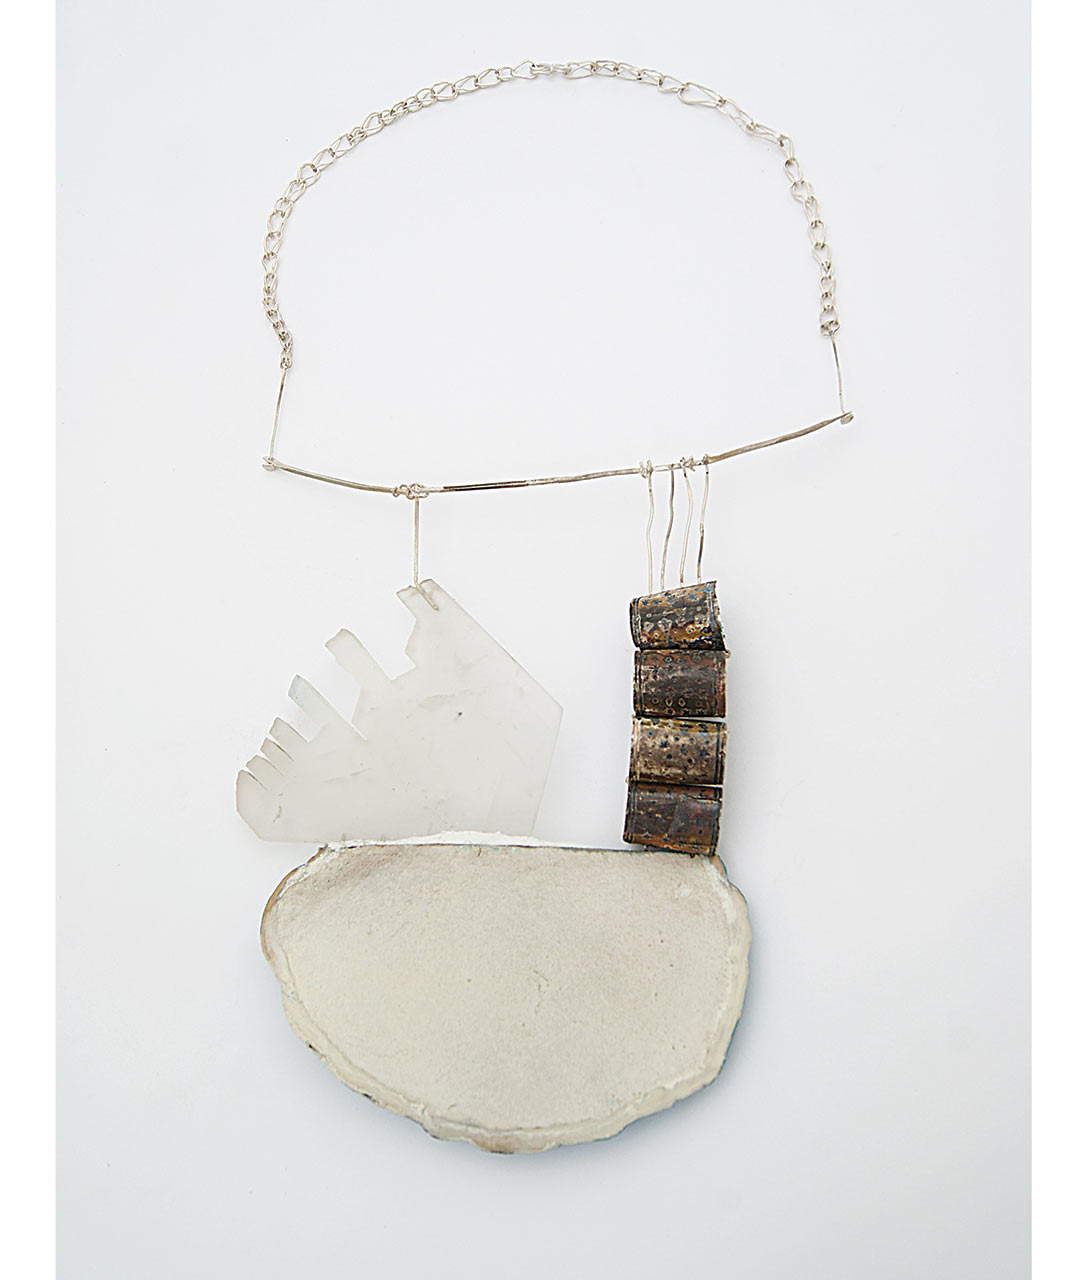 tatjana giorgadse, my grave good, 2012, necklace, silver, silver niello (antique), fungus, pigment - photo: tatjana giorgadse